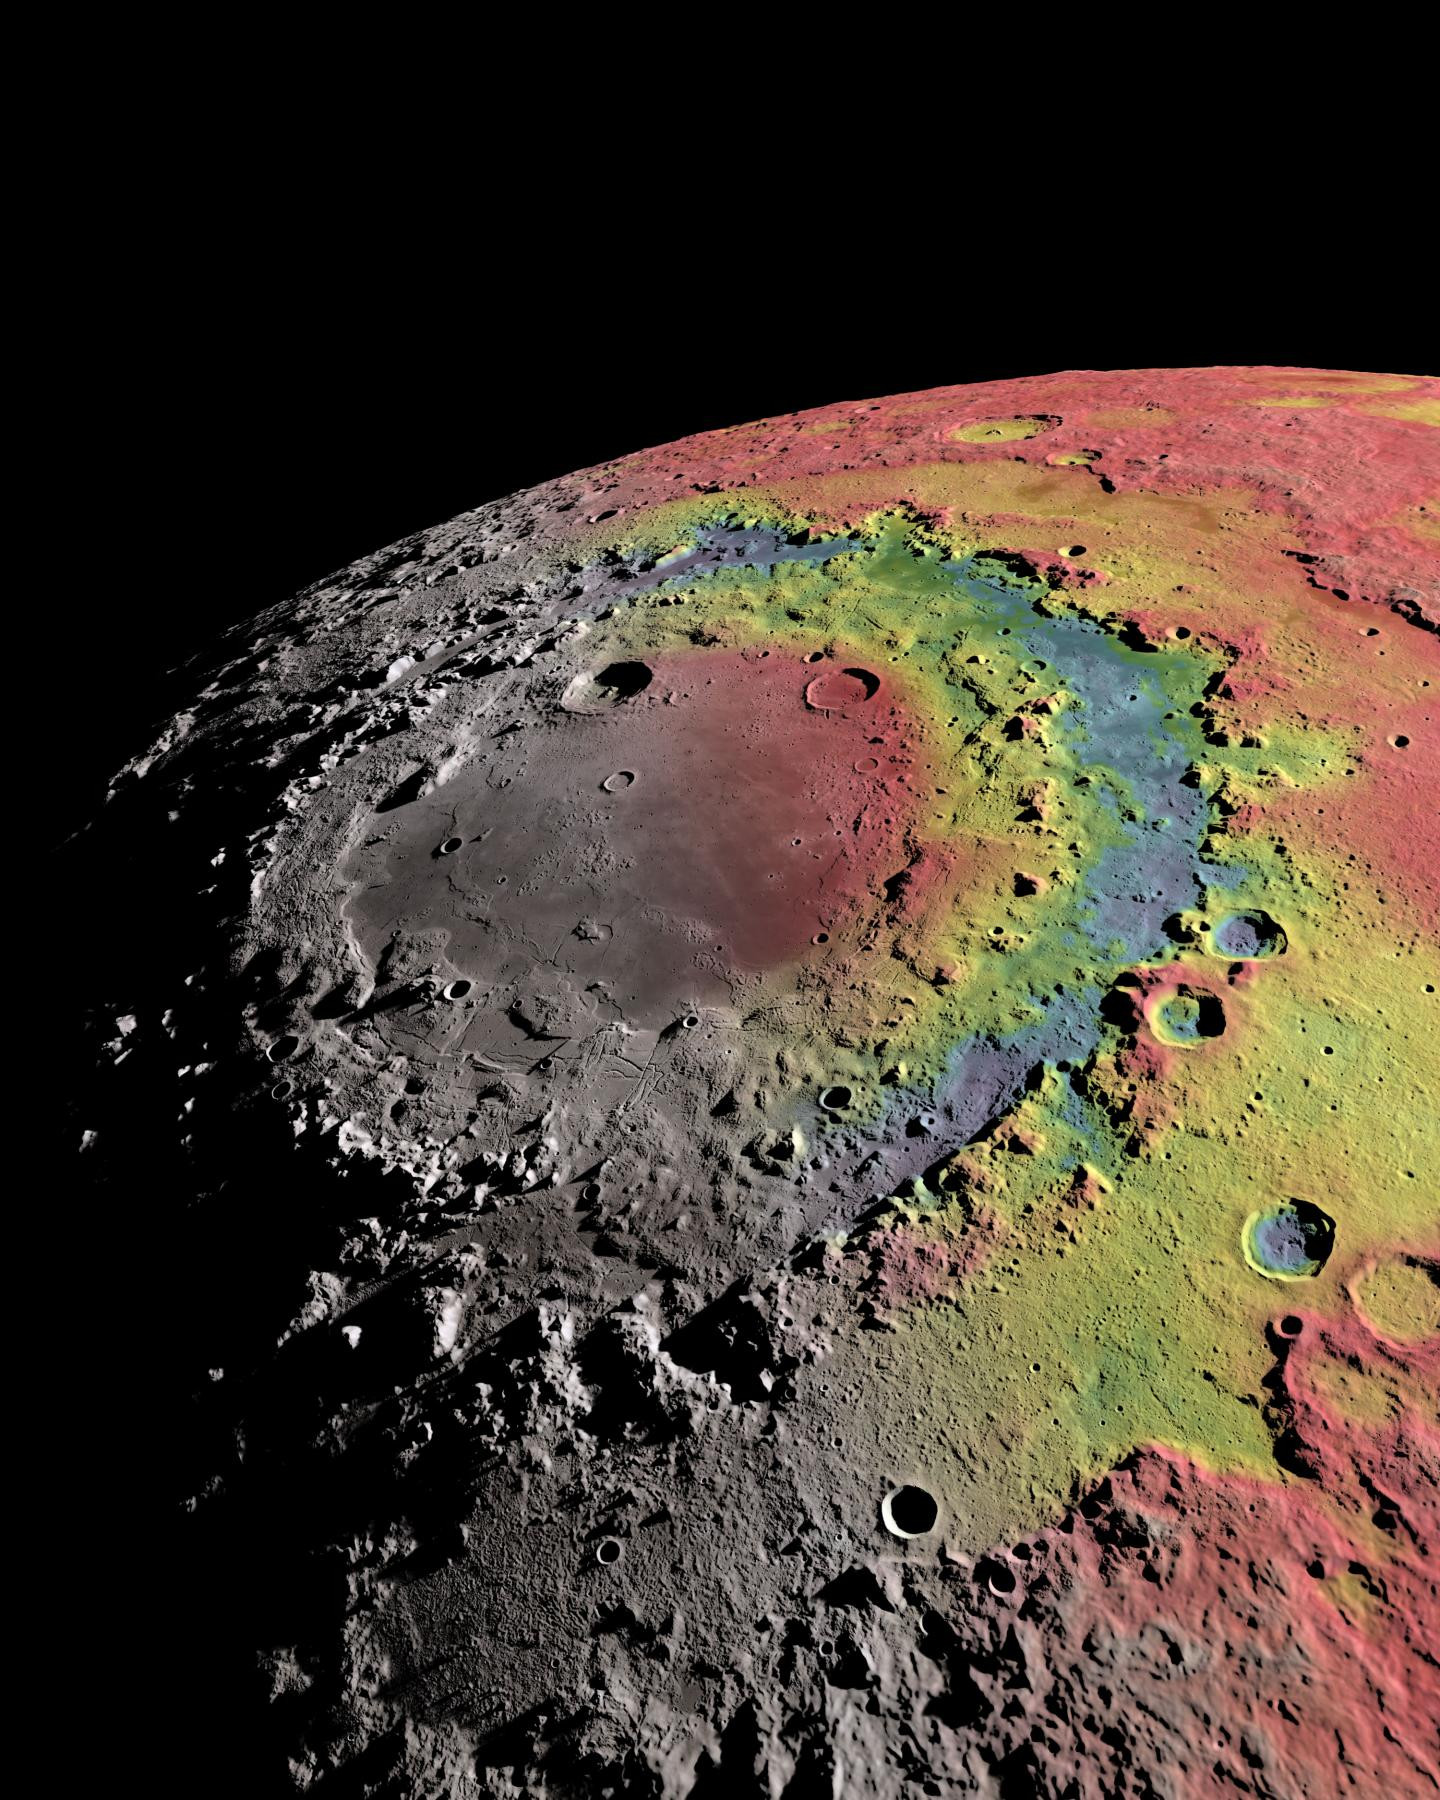 The Moon's 580-mile-wide Orientale basin has three distinct ring structures. The image shows the basin's gravitational signature (red indicates excess mass, blue indicates mass deficits), which scientists used to reconstruct the formation of the basin and its rings. Click the picture for a full-size version. Image credit: Ernest Wright, NASA/GSFC Scientific Visualisation Studio.